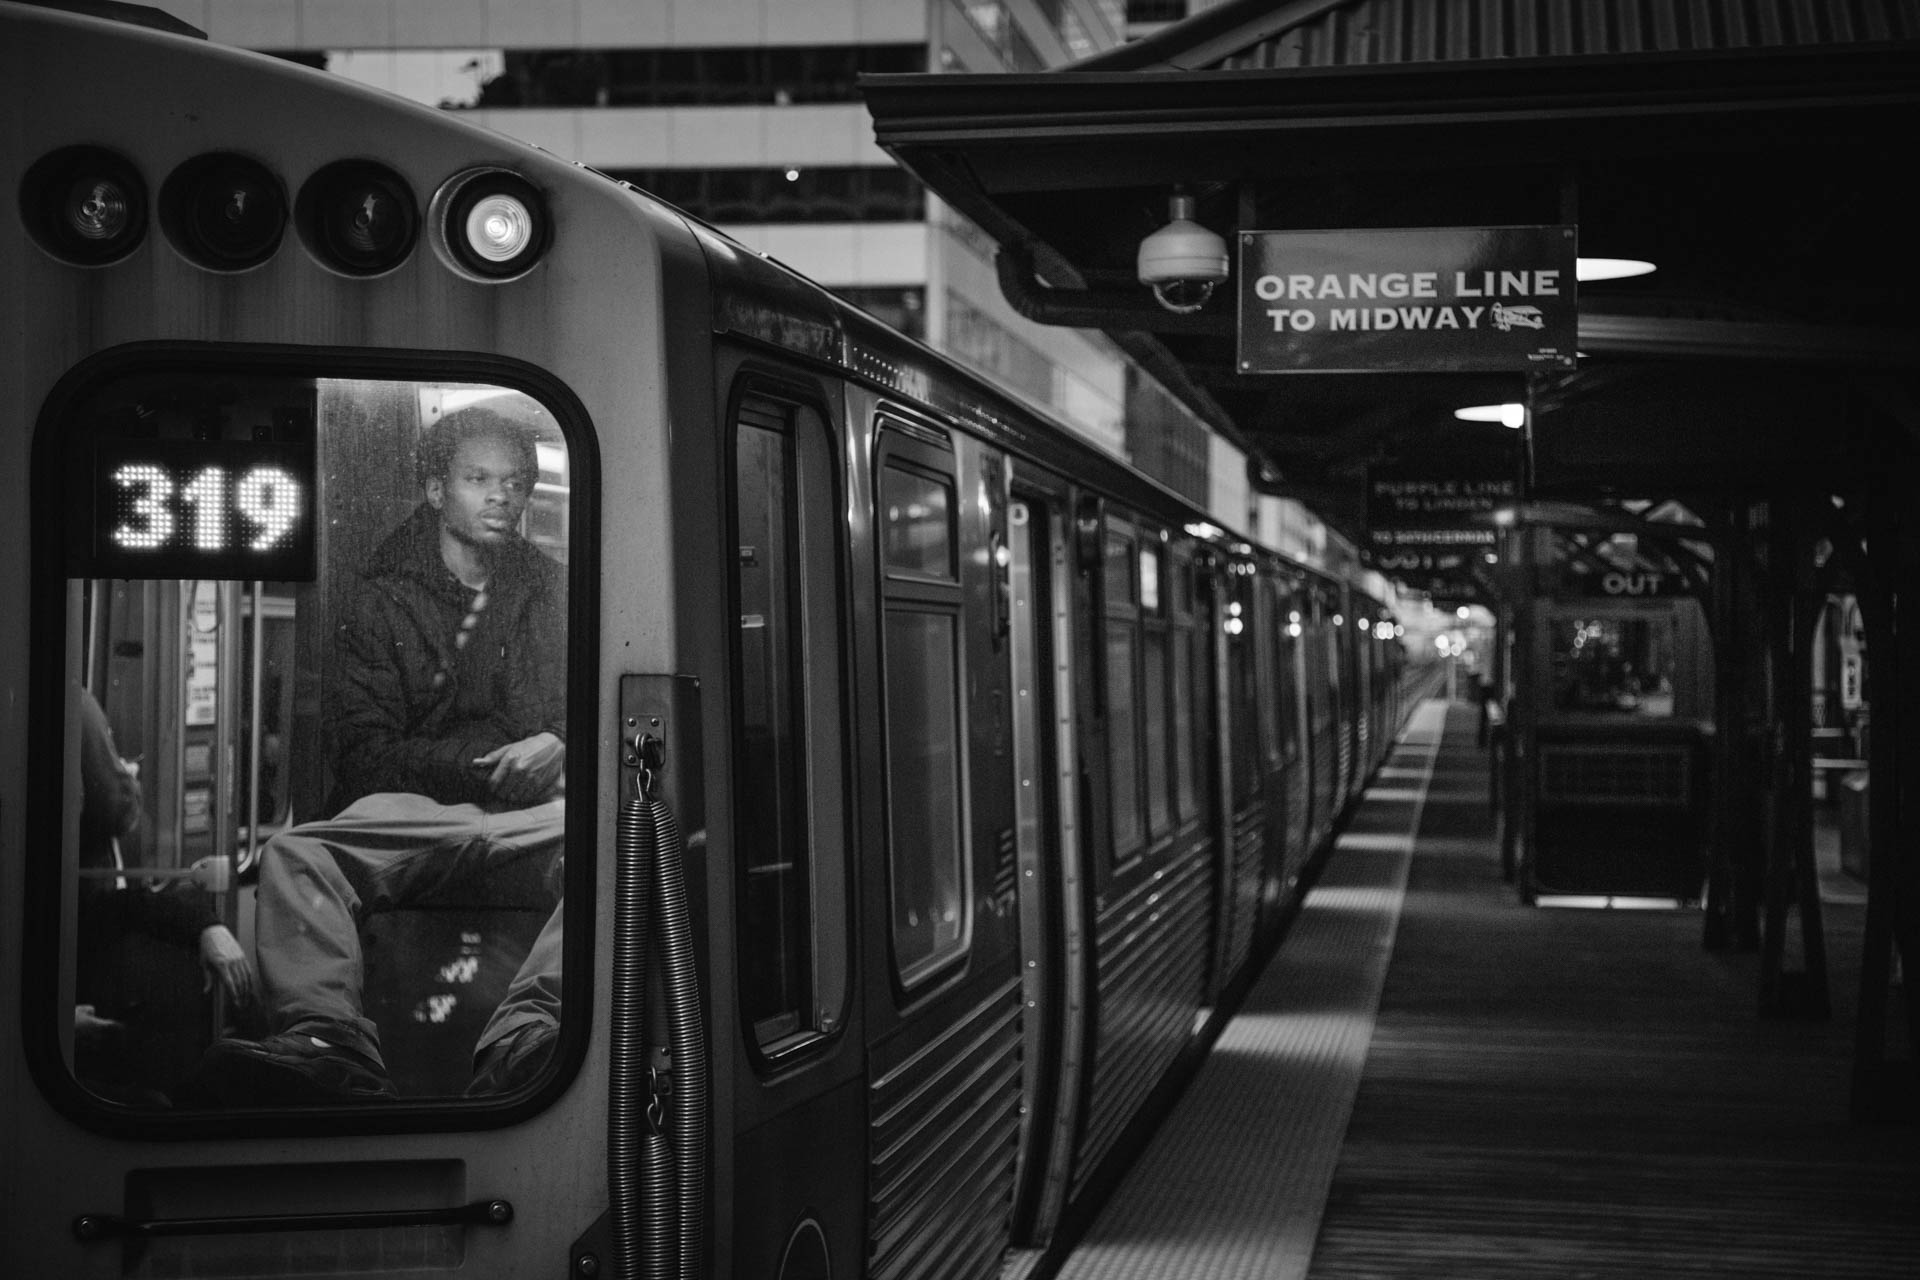 cta_wells_jackson_station_black_male_passenger_window_6760untitled